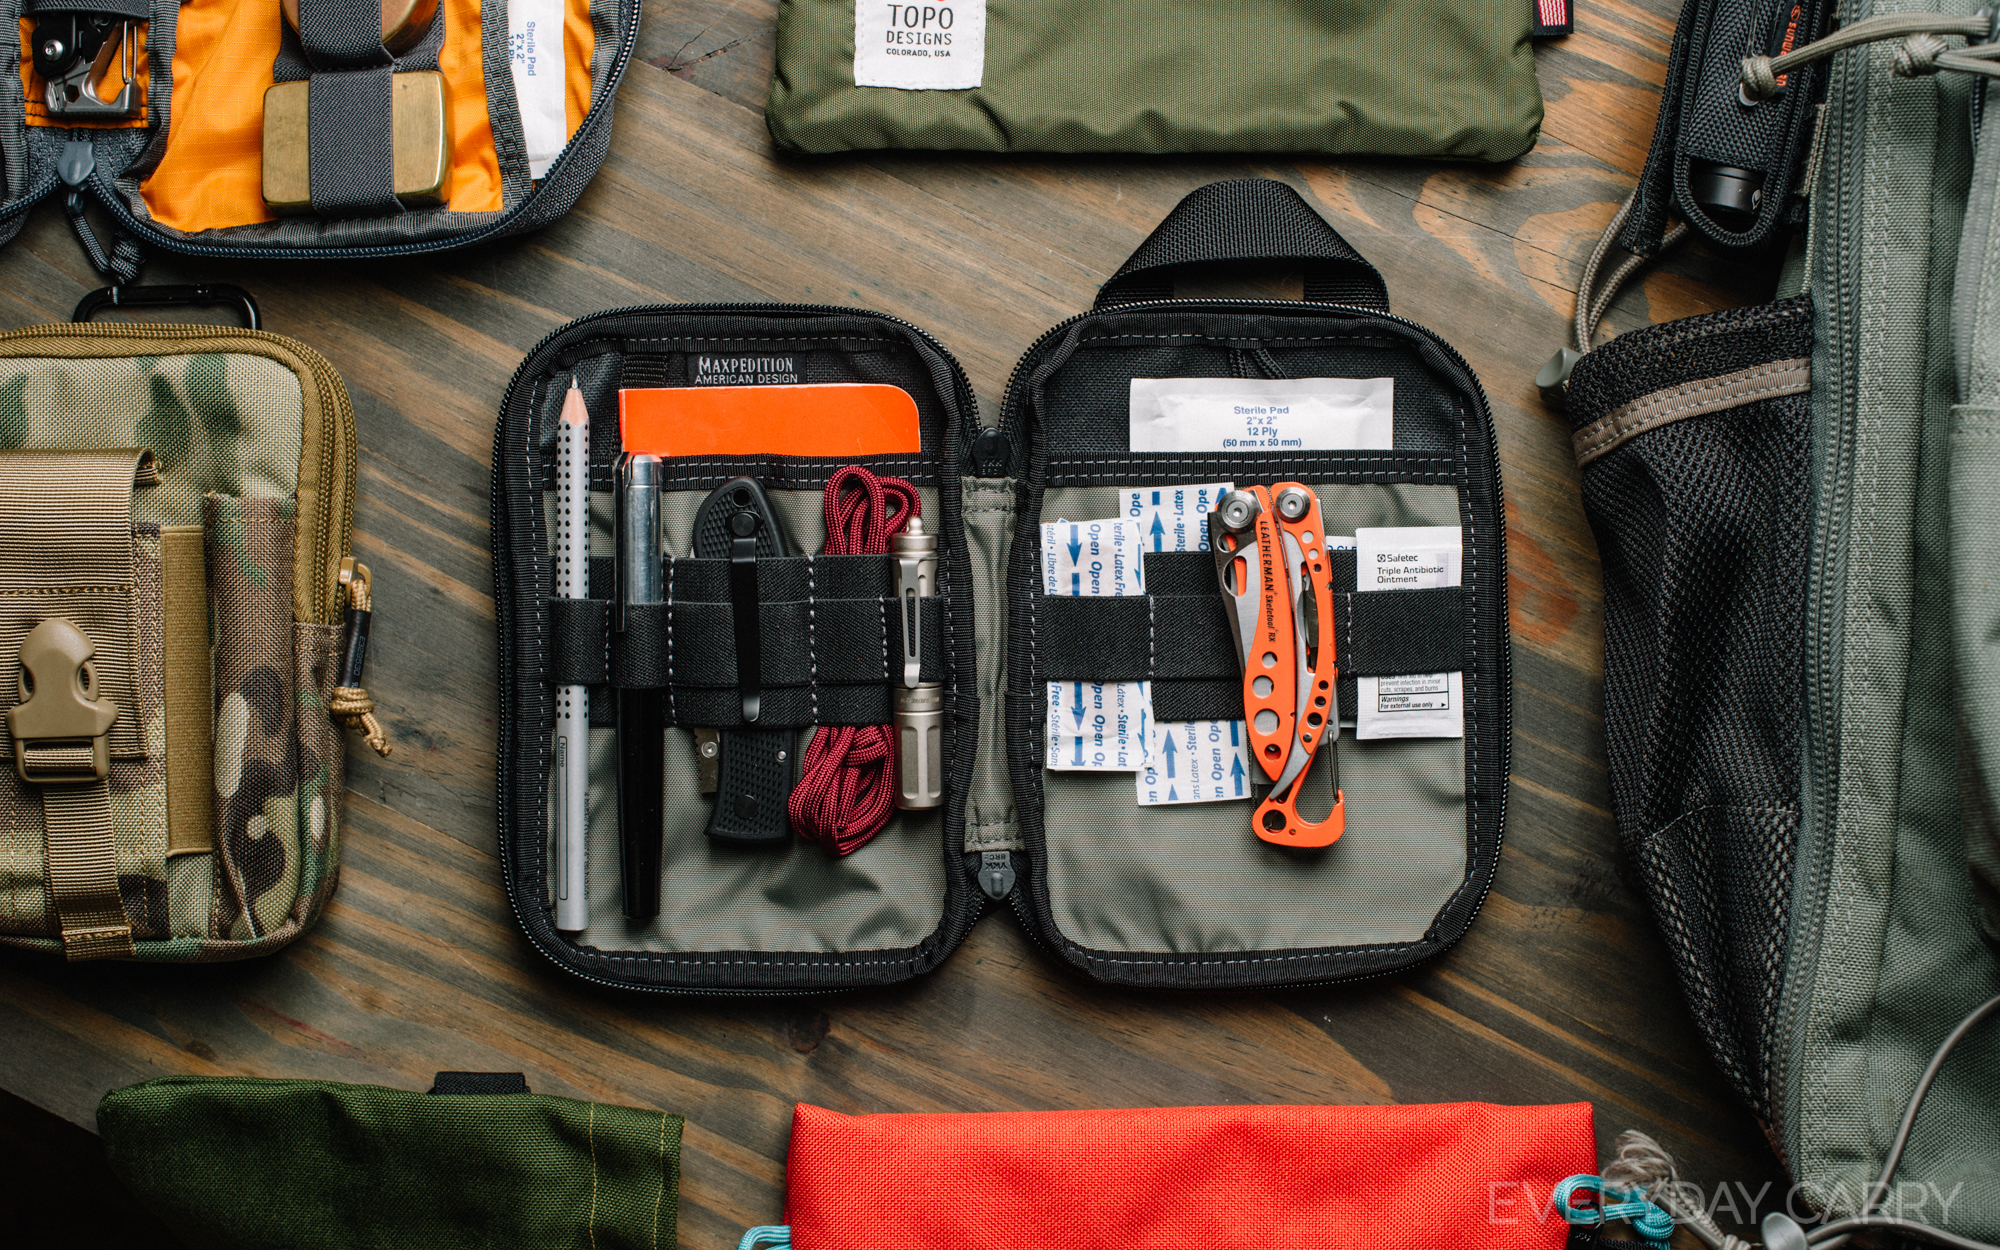 Enter The Pocket Organizer These Versatile Pouches Have A Ton Of Straps Pockets And Places For All Your Gear To Stay Neatly In Place Ready When You